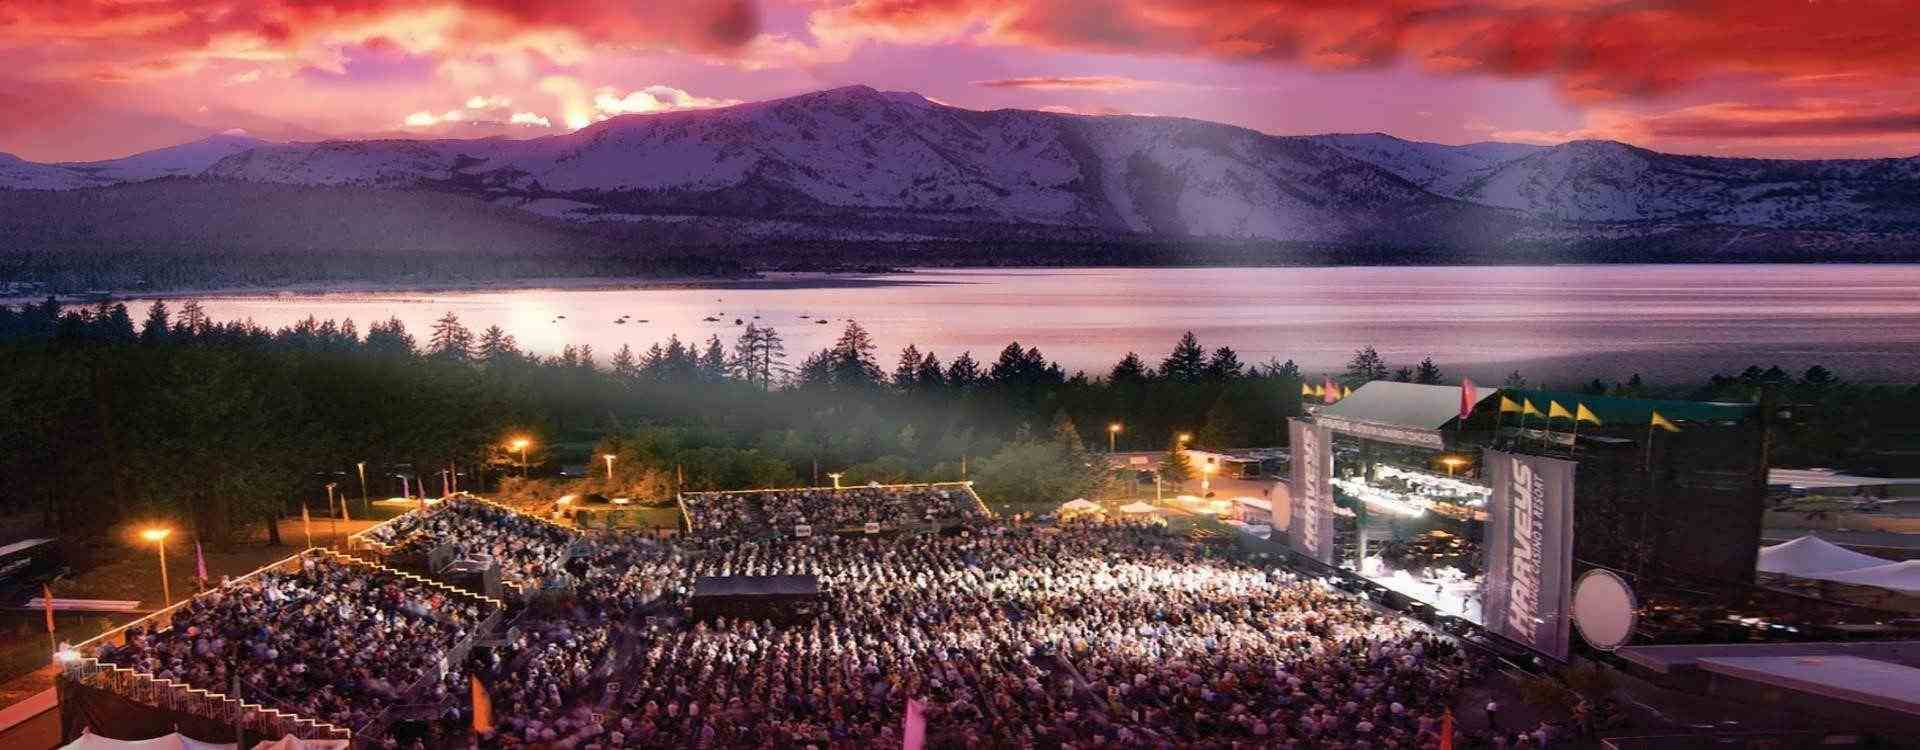 https://laketahoereno.com/wp-content/uploads/2015/03/harveysconcerts.jpg